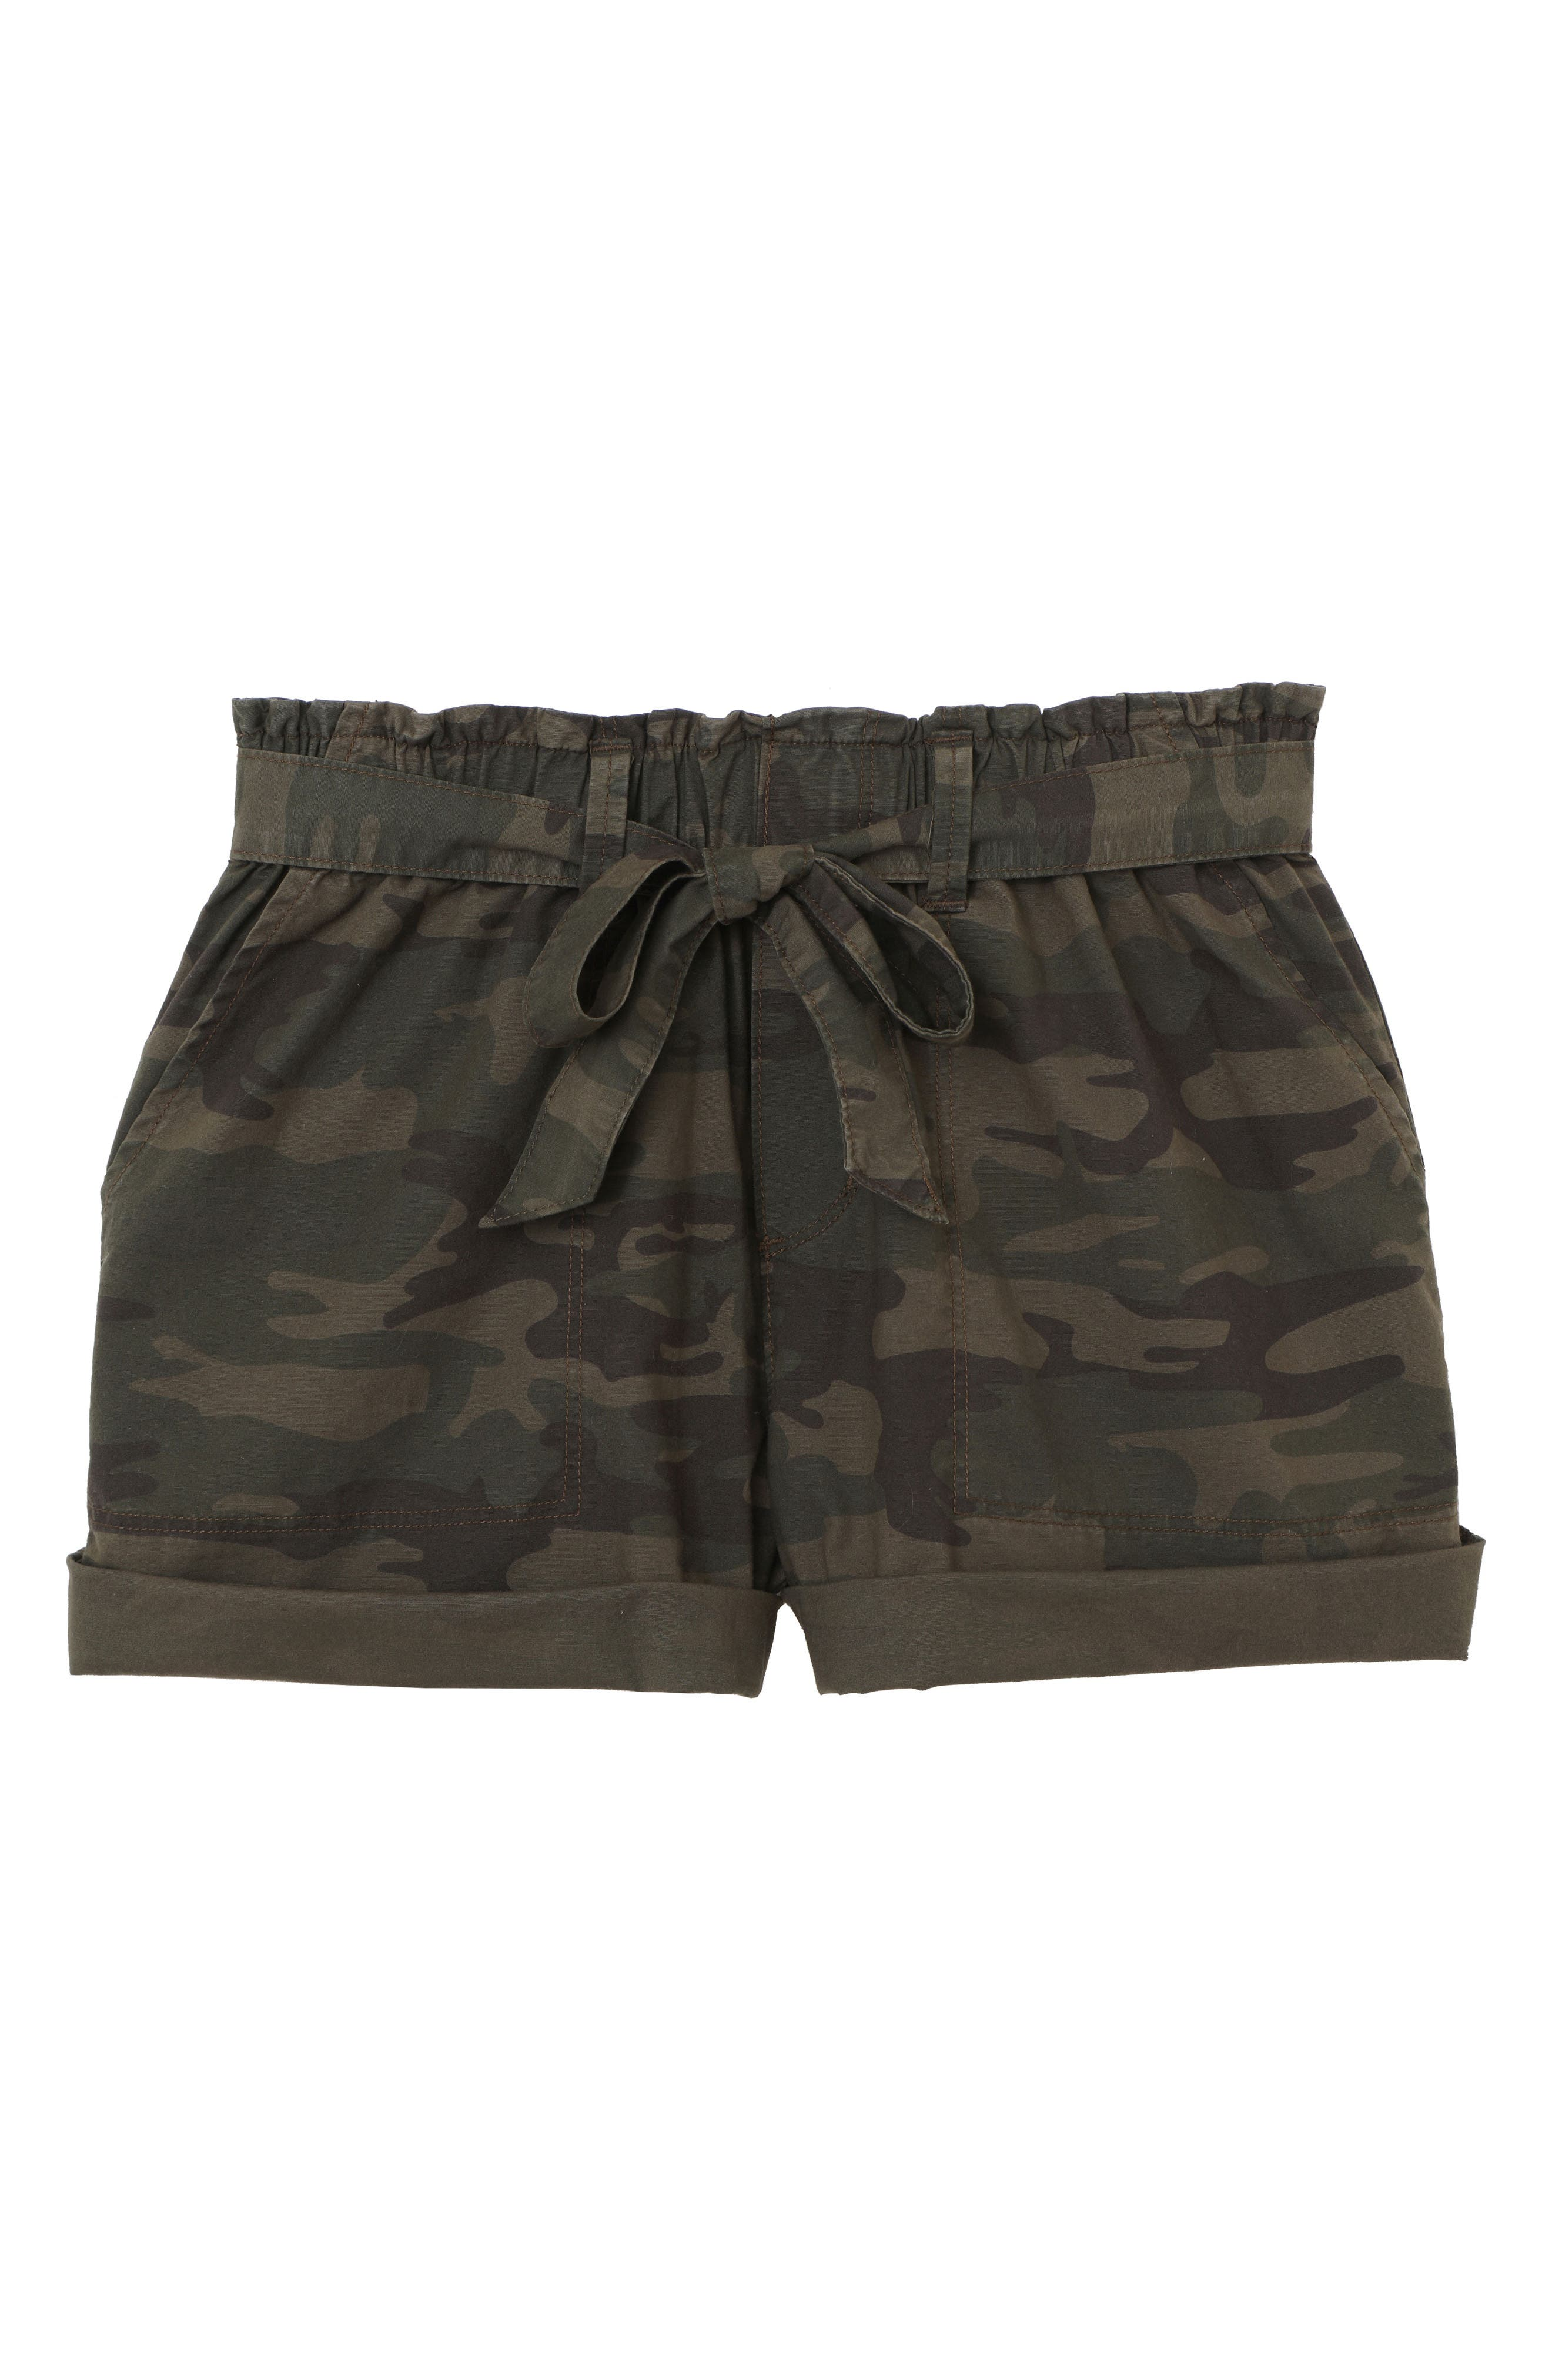 Daydreamer Stretch Cotton Camo Shorts,                             Alternate thumbnail 4, color,                             398